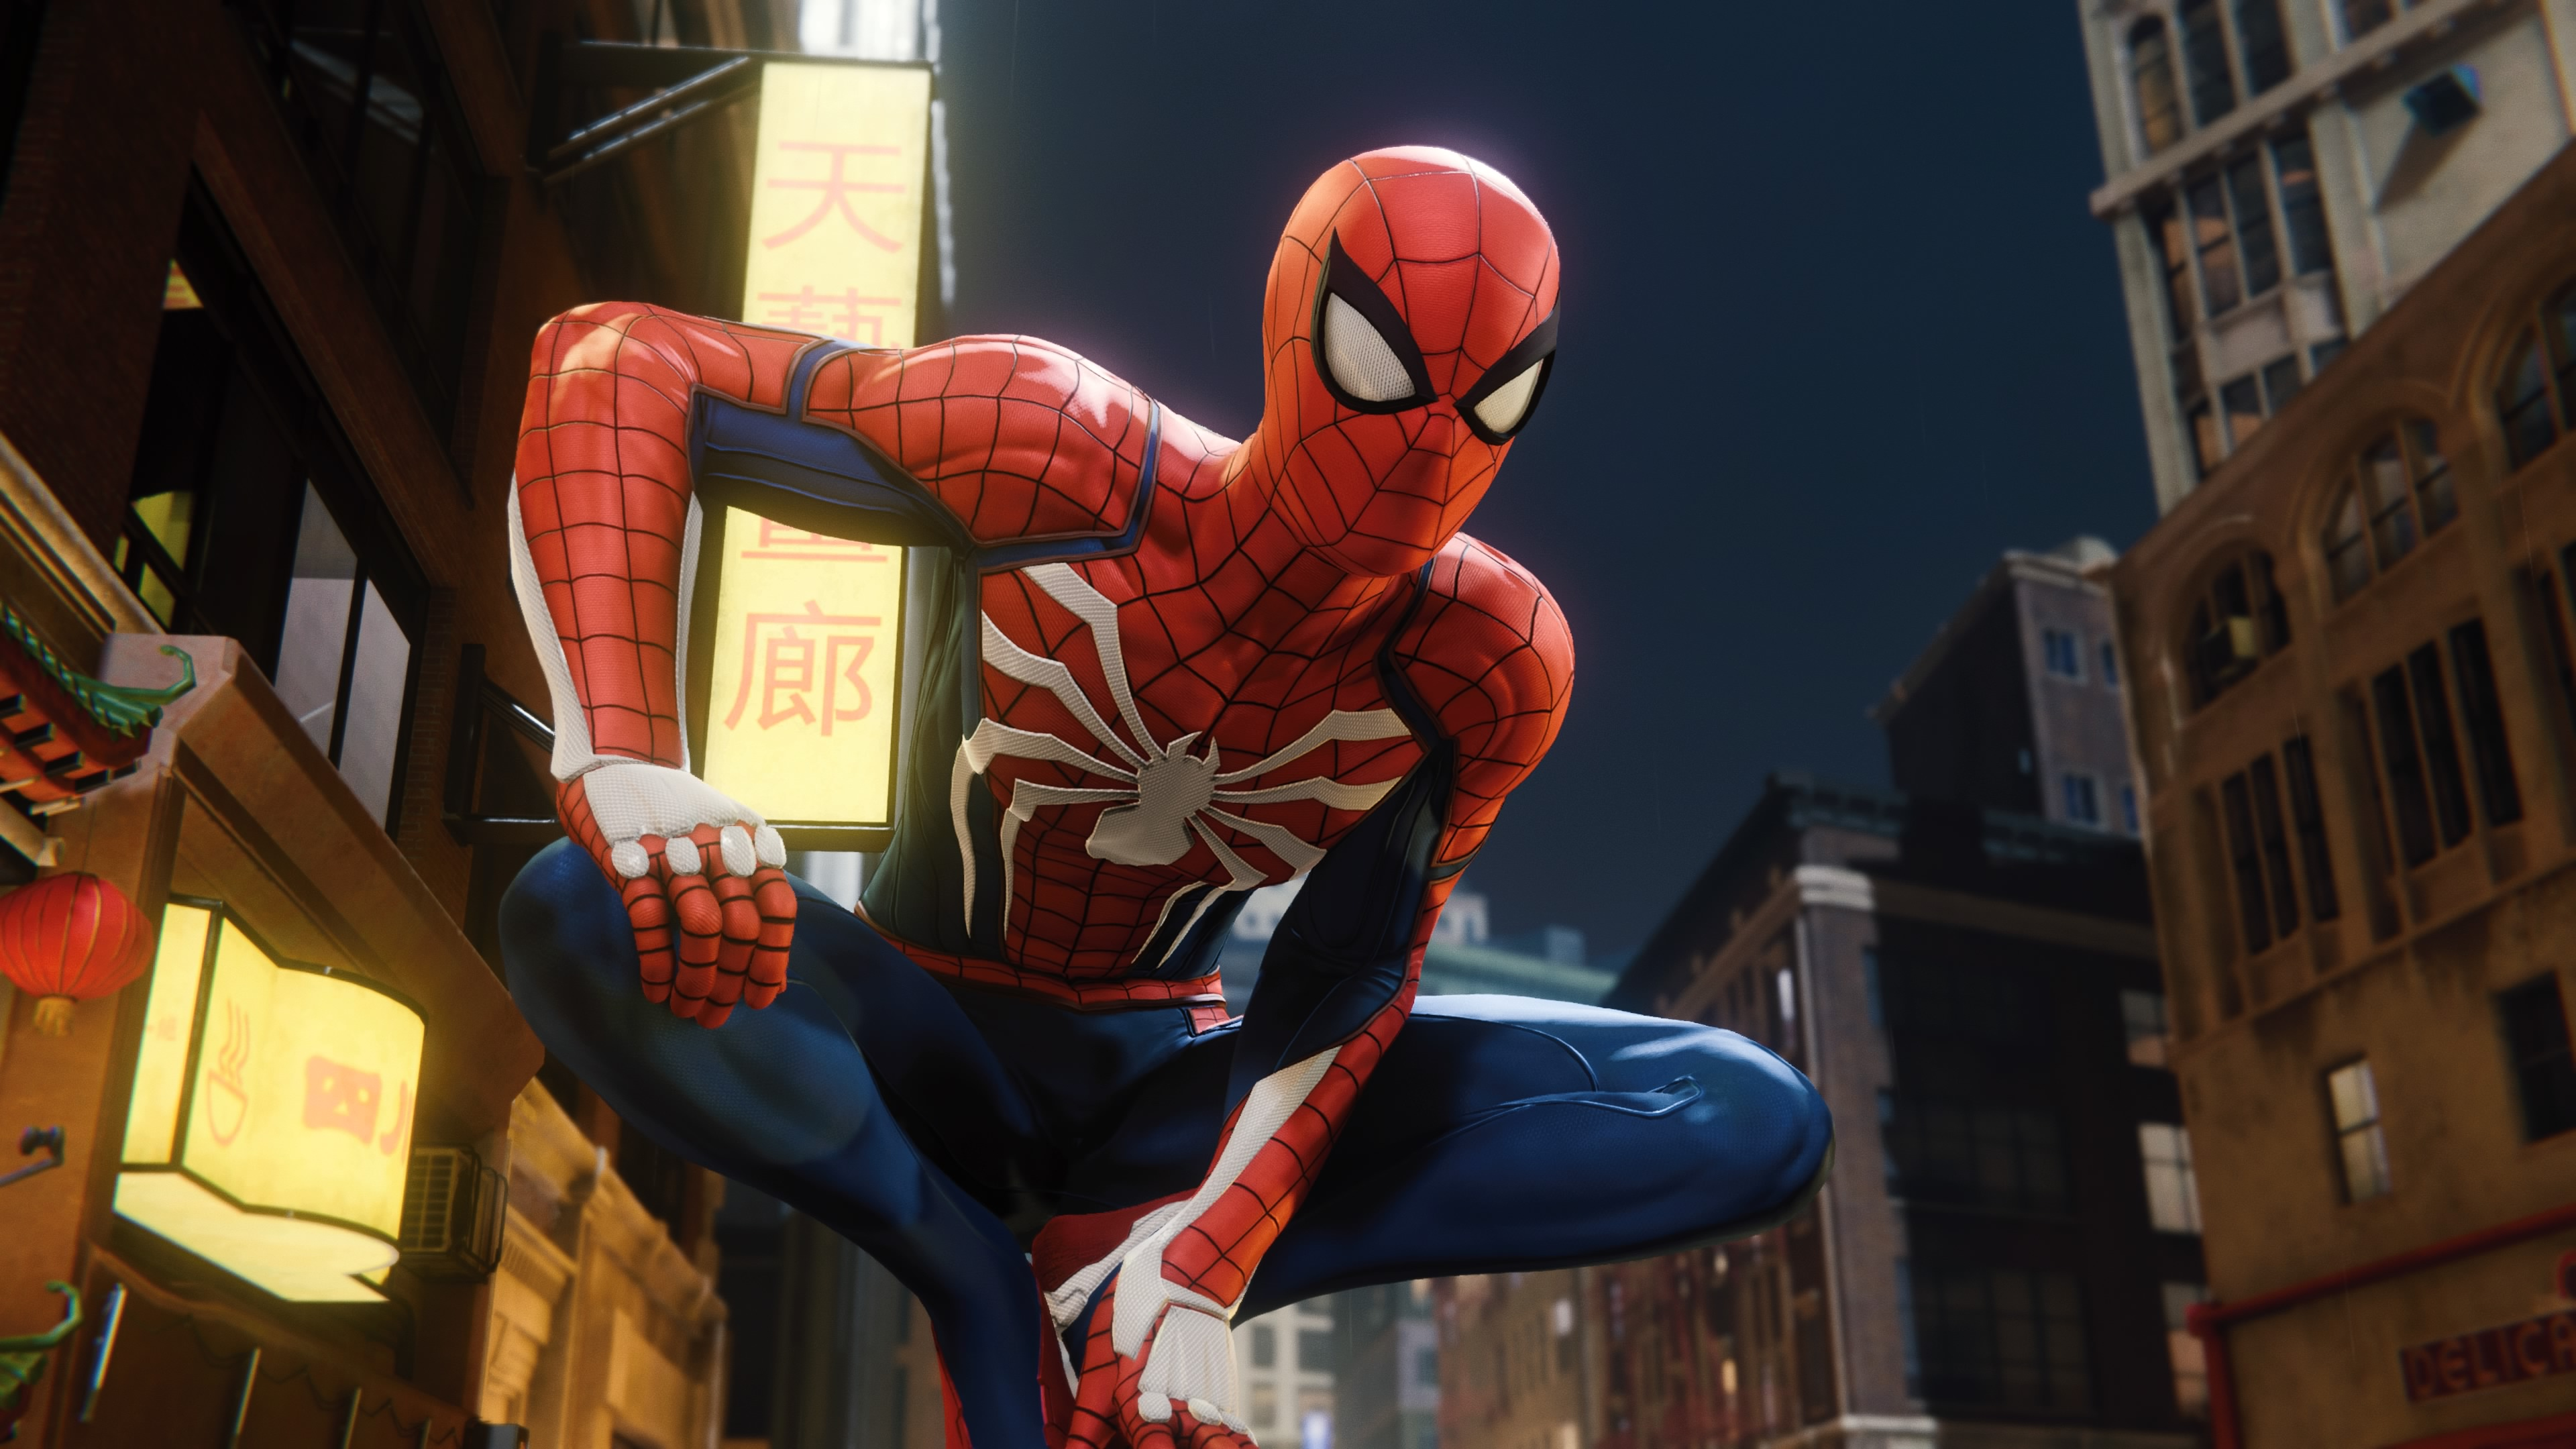 Spiderman Ps4 Pro 2018 4k Game, HD Games, 4k Wallpapers ...